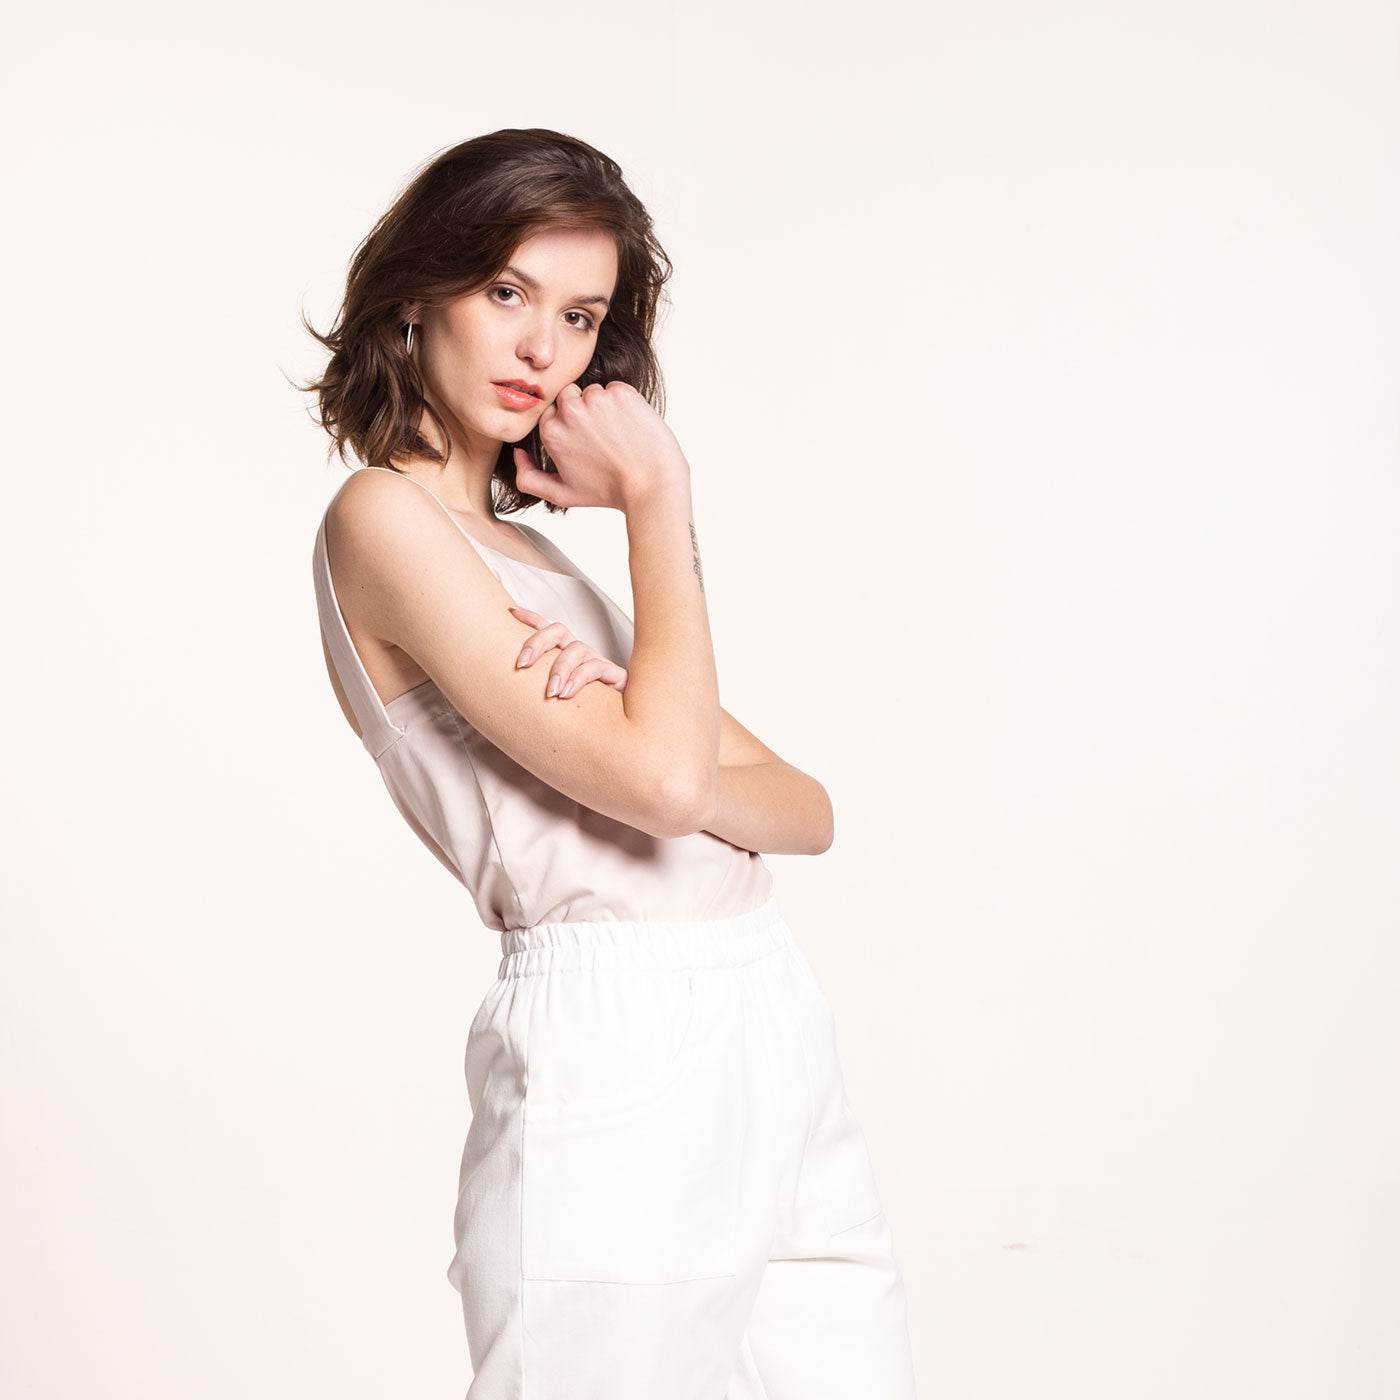 The model wears a rose-beige, sustainable, organic cotton, wide straps top, side view.